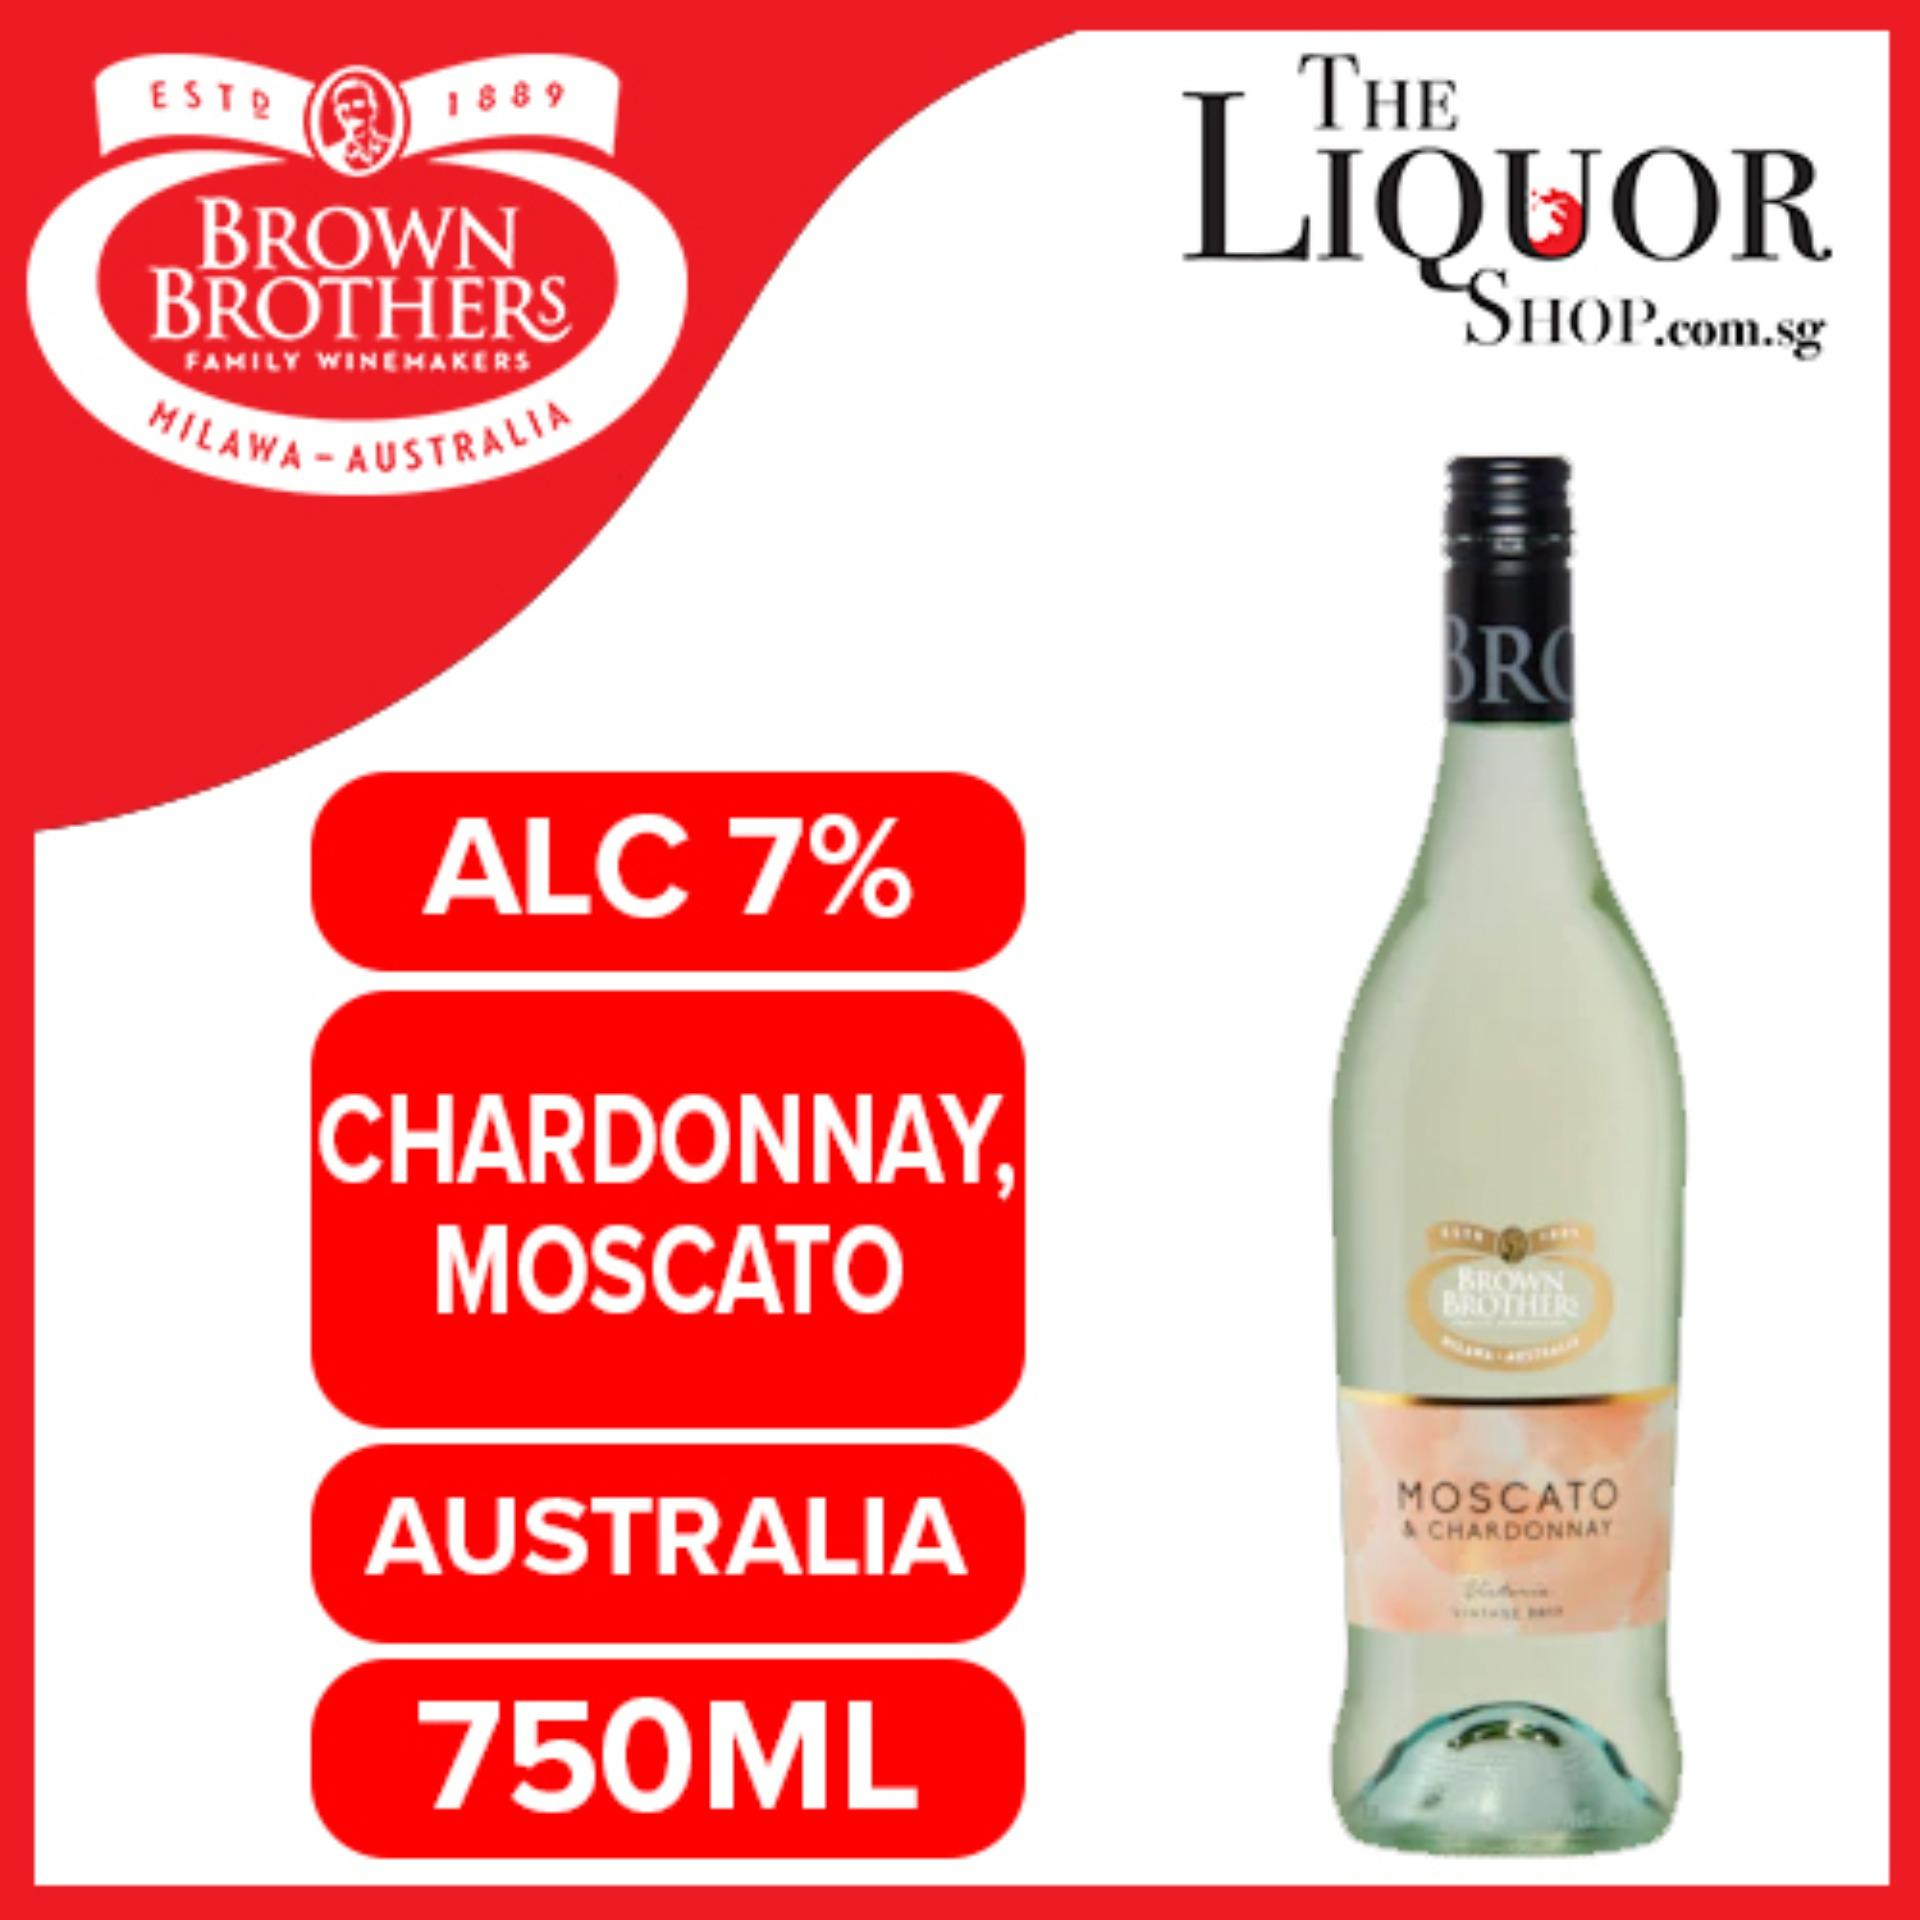 Brown Brothers Moscato & Chardonnay 750ml By The Liquor Shop.